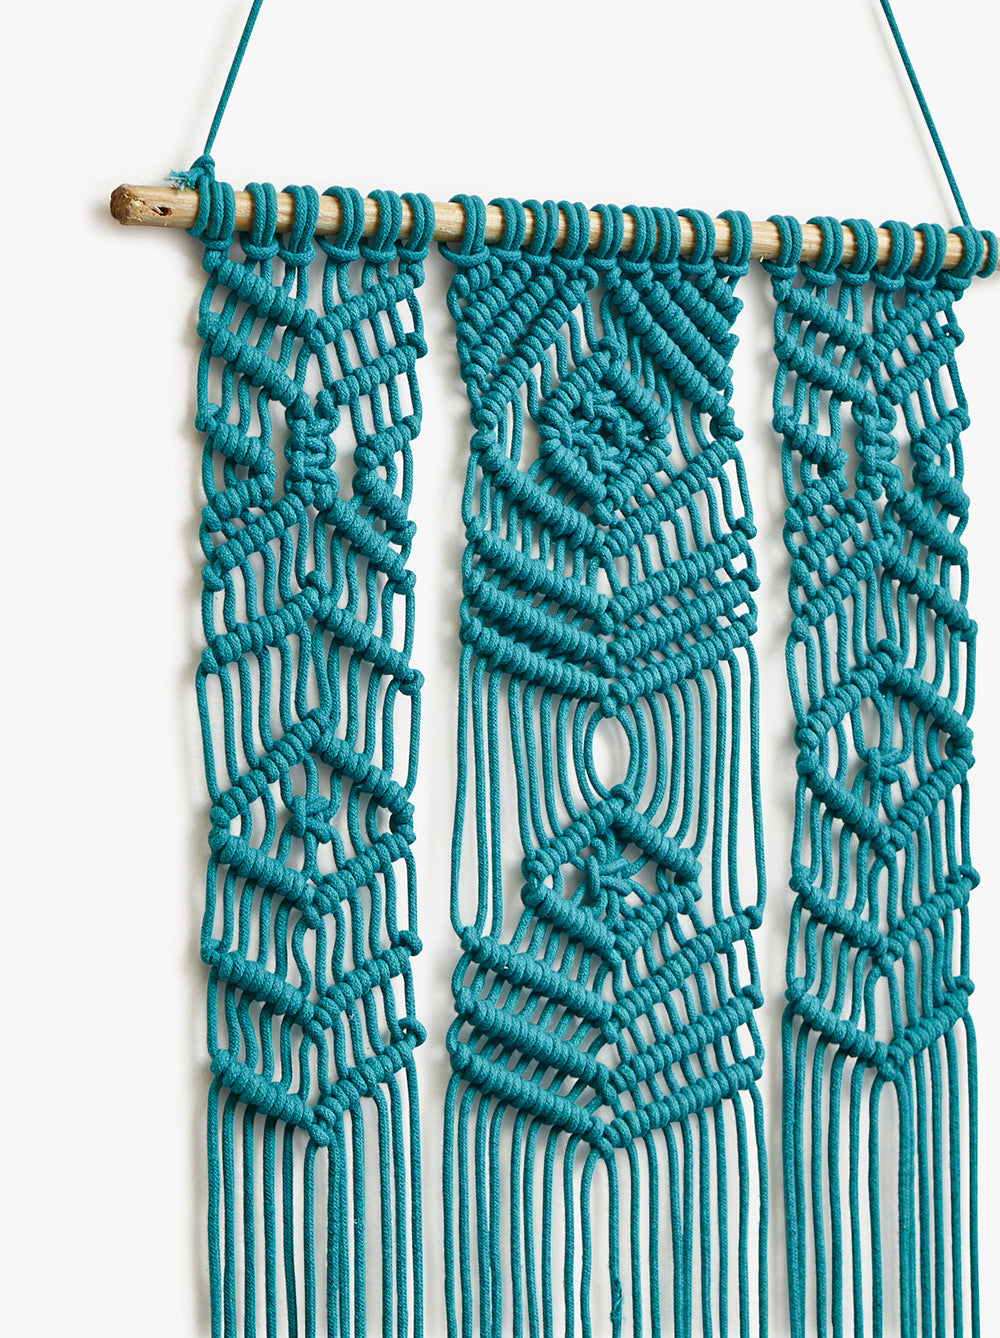 Teal Crochet Wall Hanging